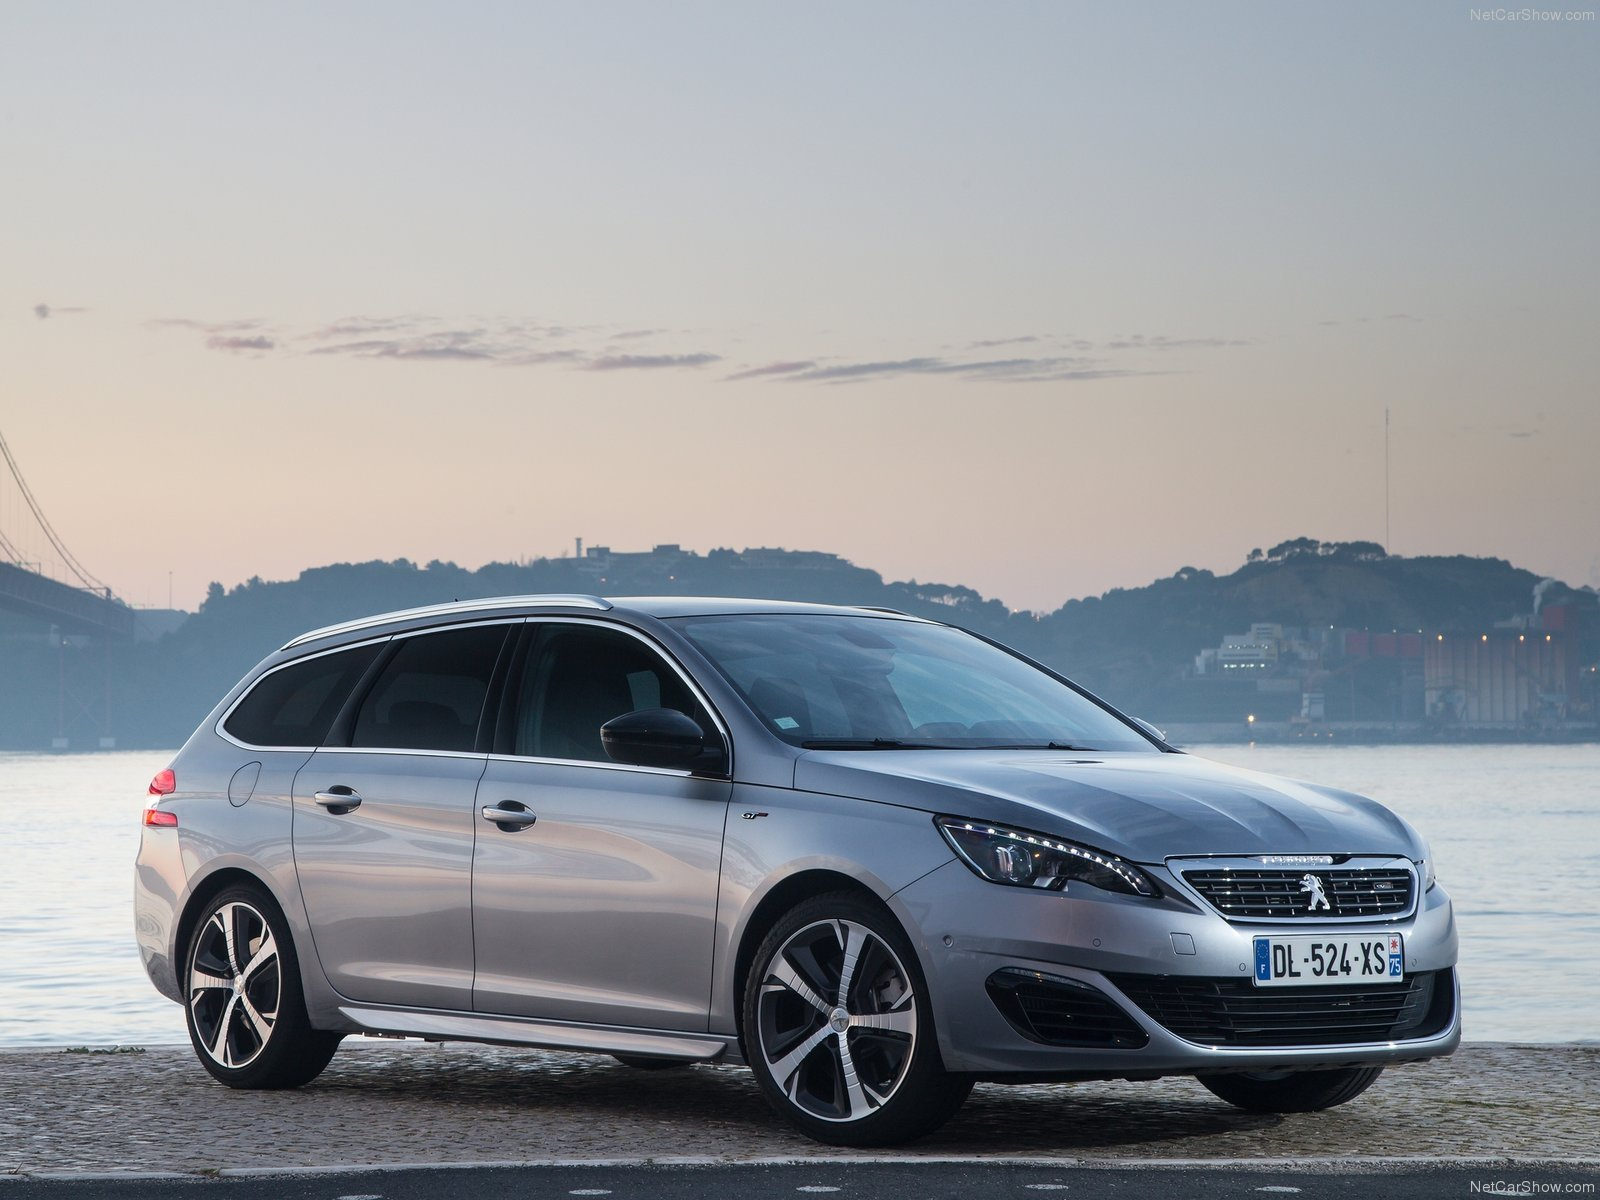 peugeot 308 sw gt 2015 cars french wagon wallpaper 1600x1200 604562 wallpaperup. Black Bedroom Furniture Sets. Home Design Ideas